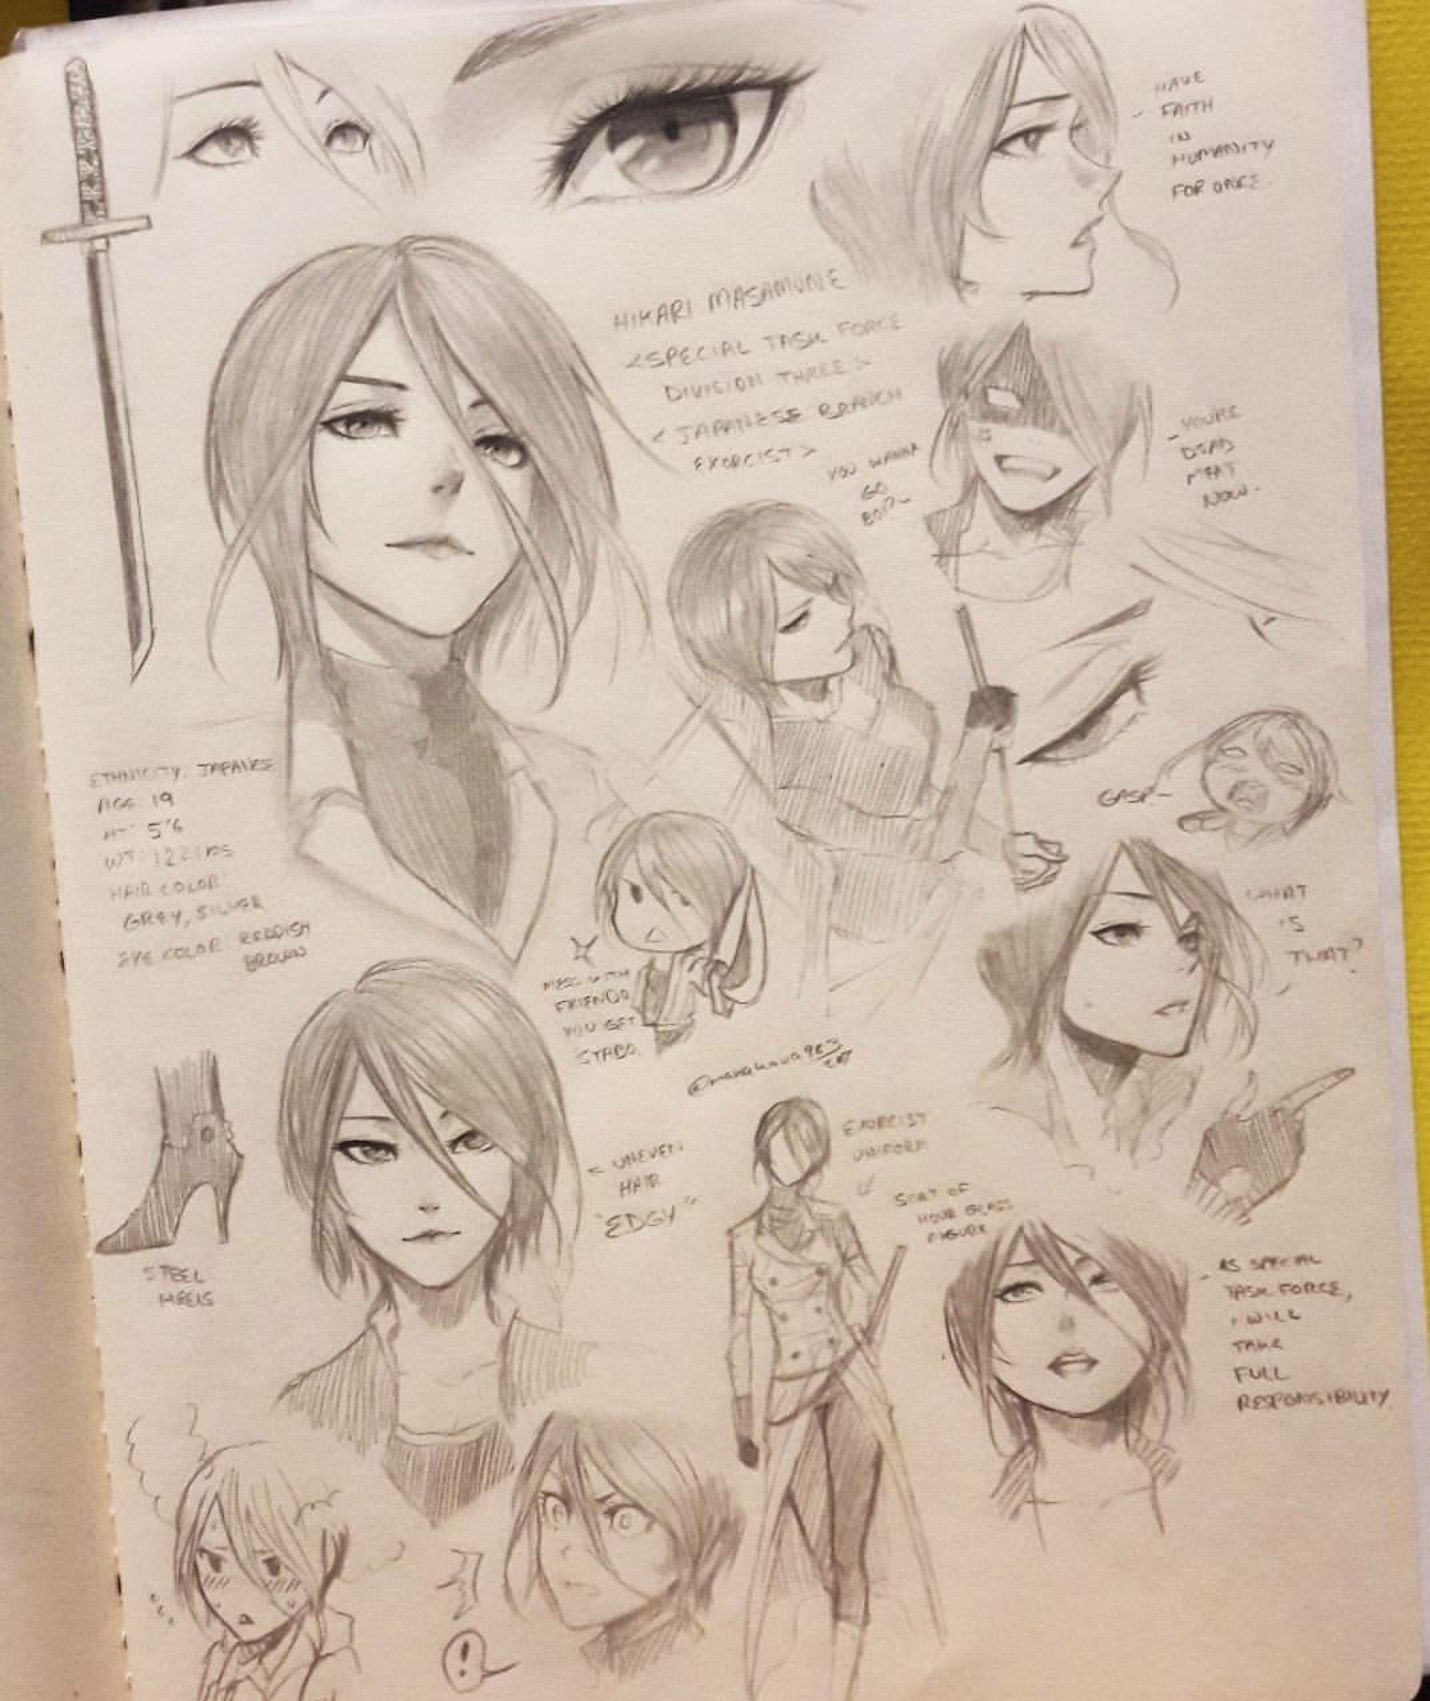 12 Exquisite Learn To Draw Manga Ideas In 2020 Character Design Sketches Anime Character Design Drawing Poses